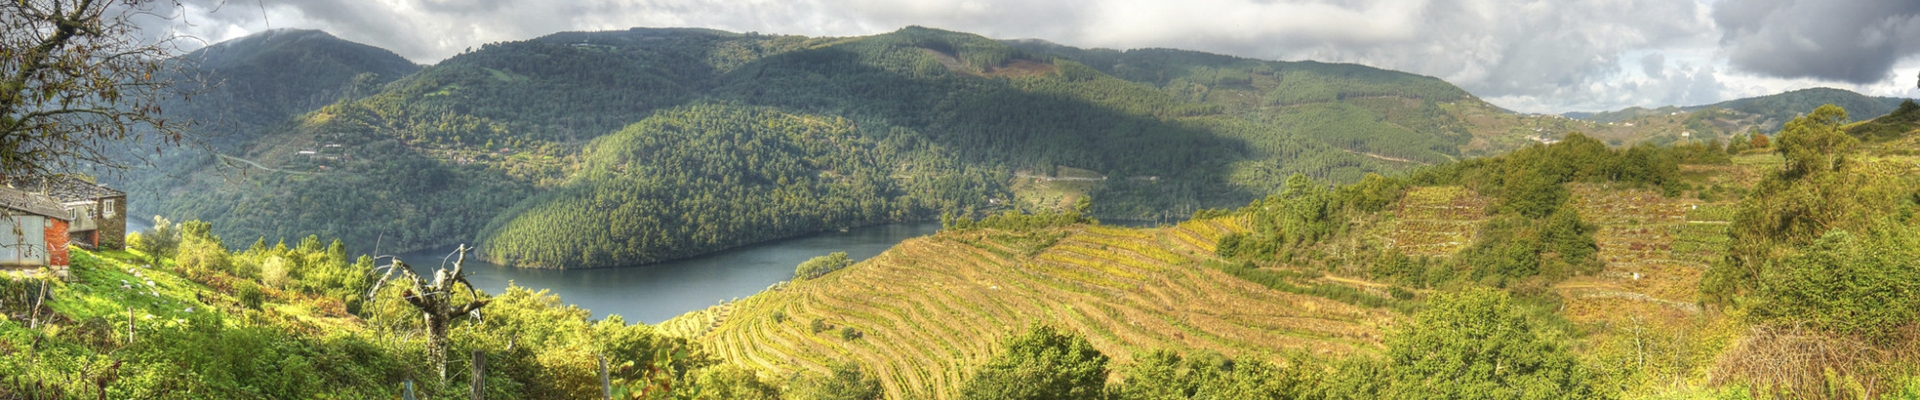 Full day trip in A Ribeira Sacra